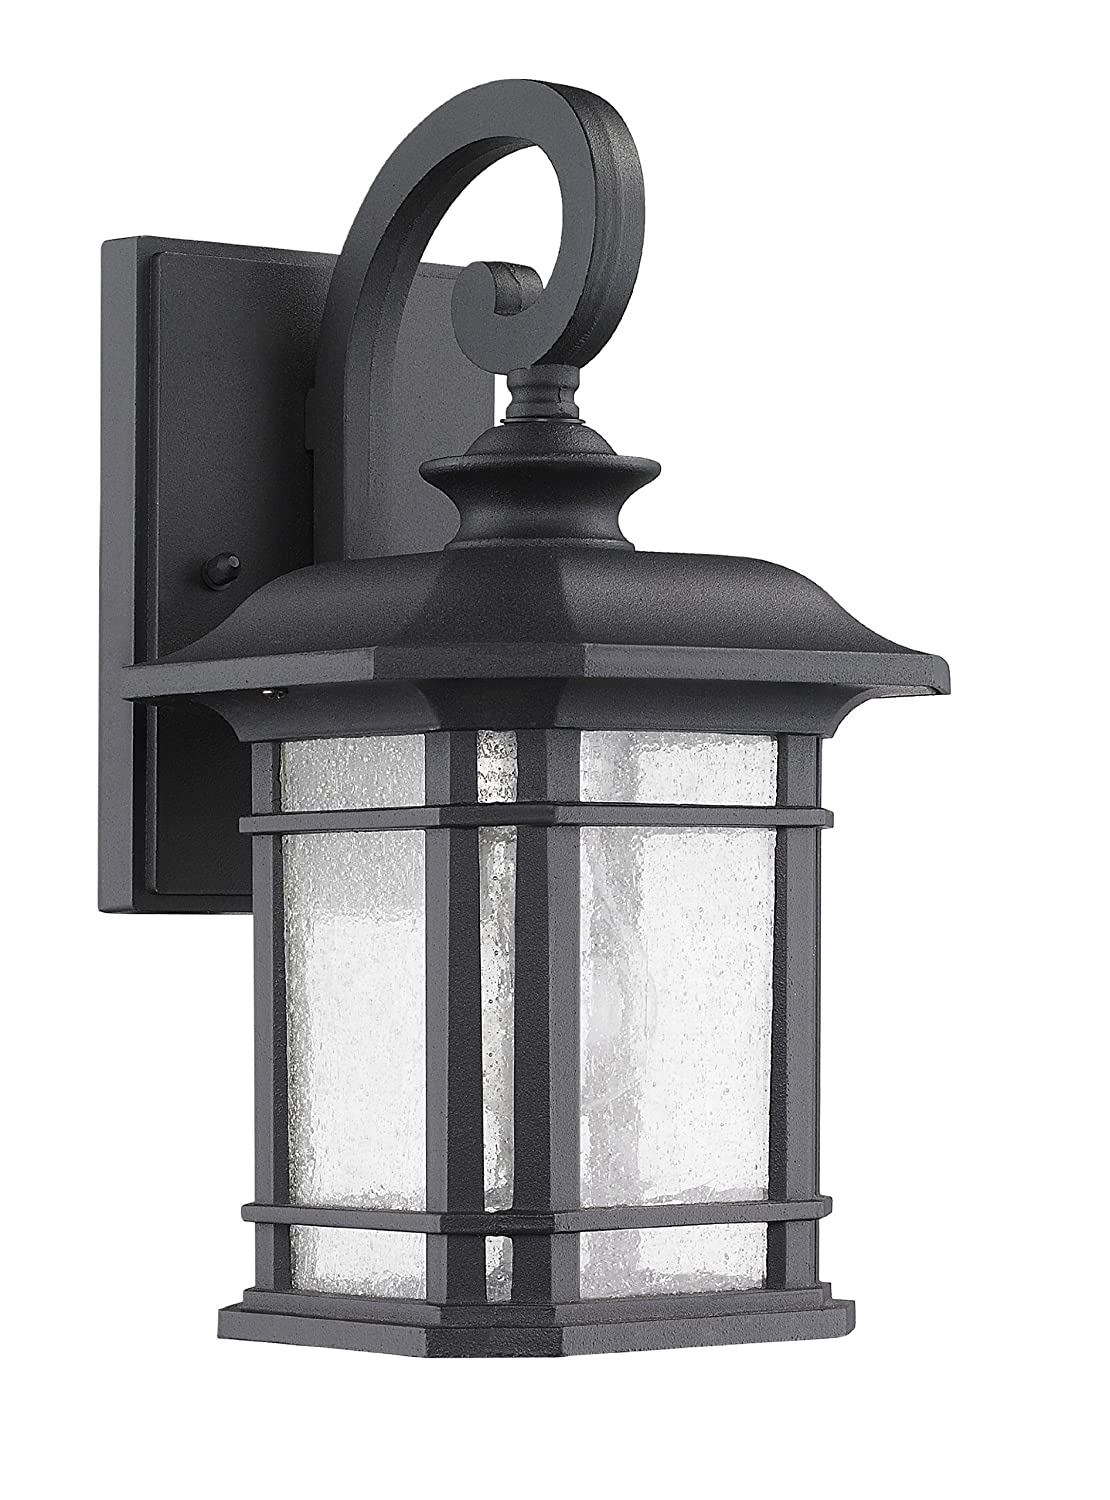 Chloe lighting ch22021bk17 od1 franklin transitional 1 light black chloe lighting ch22021bk17 od1 franklin transitional 1 light black outdoor wall sconce 17 height home outdoor electric lighting amazon aloadofball Images